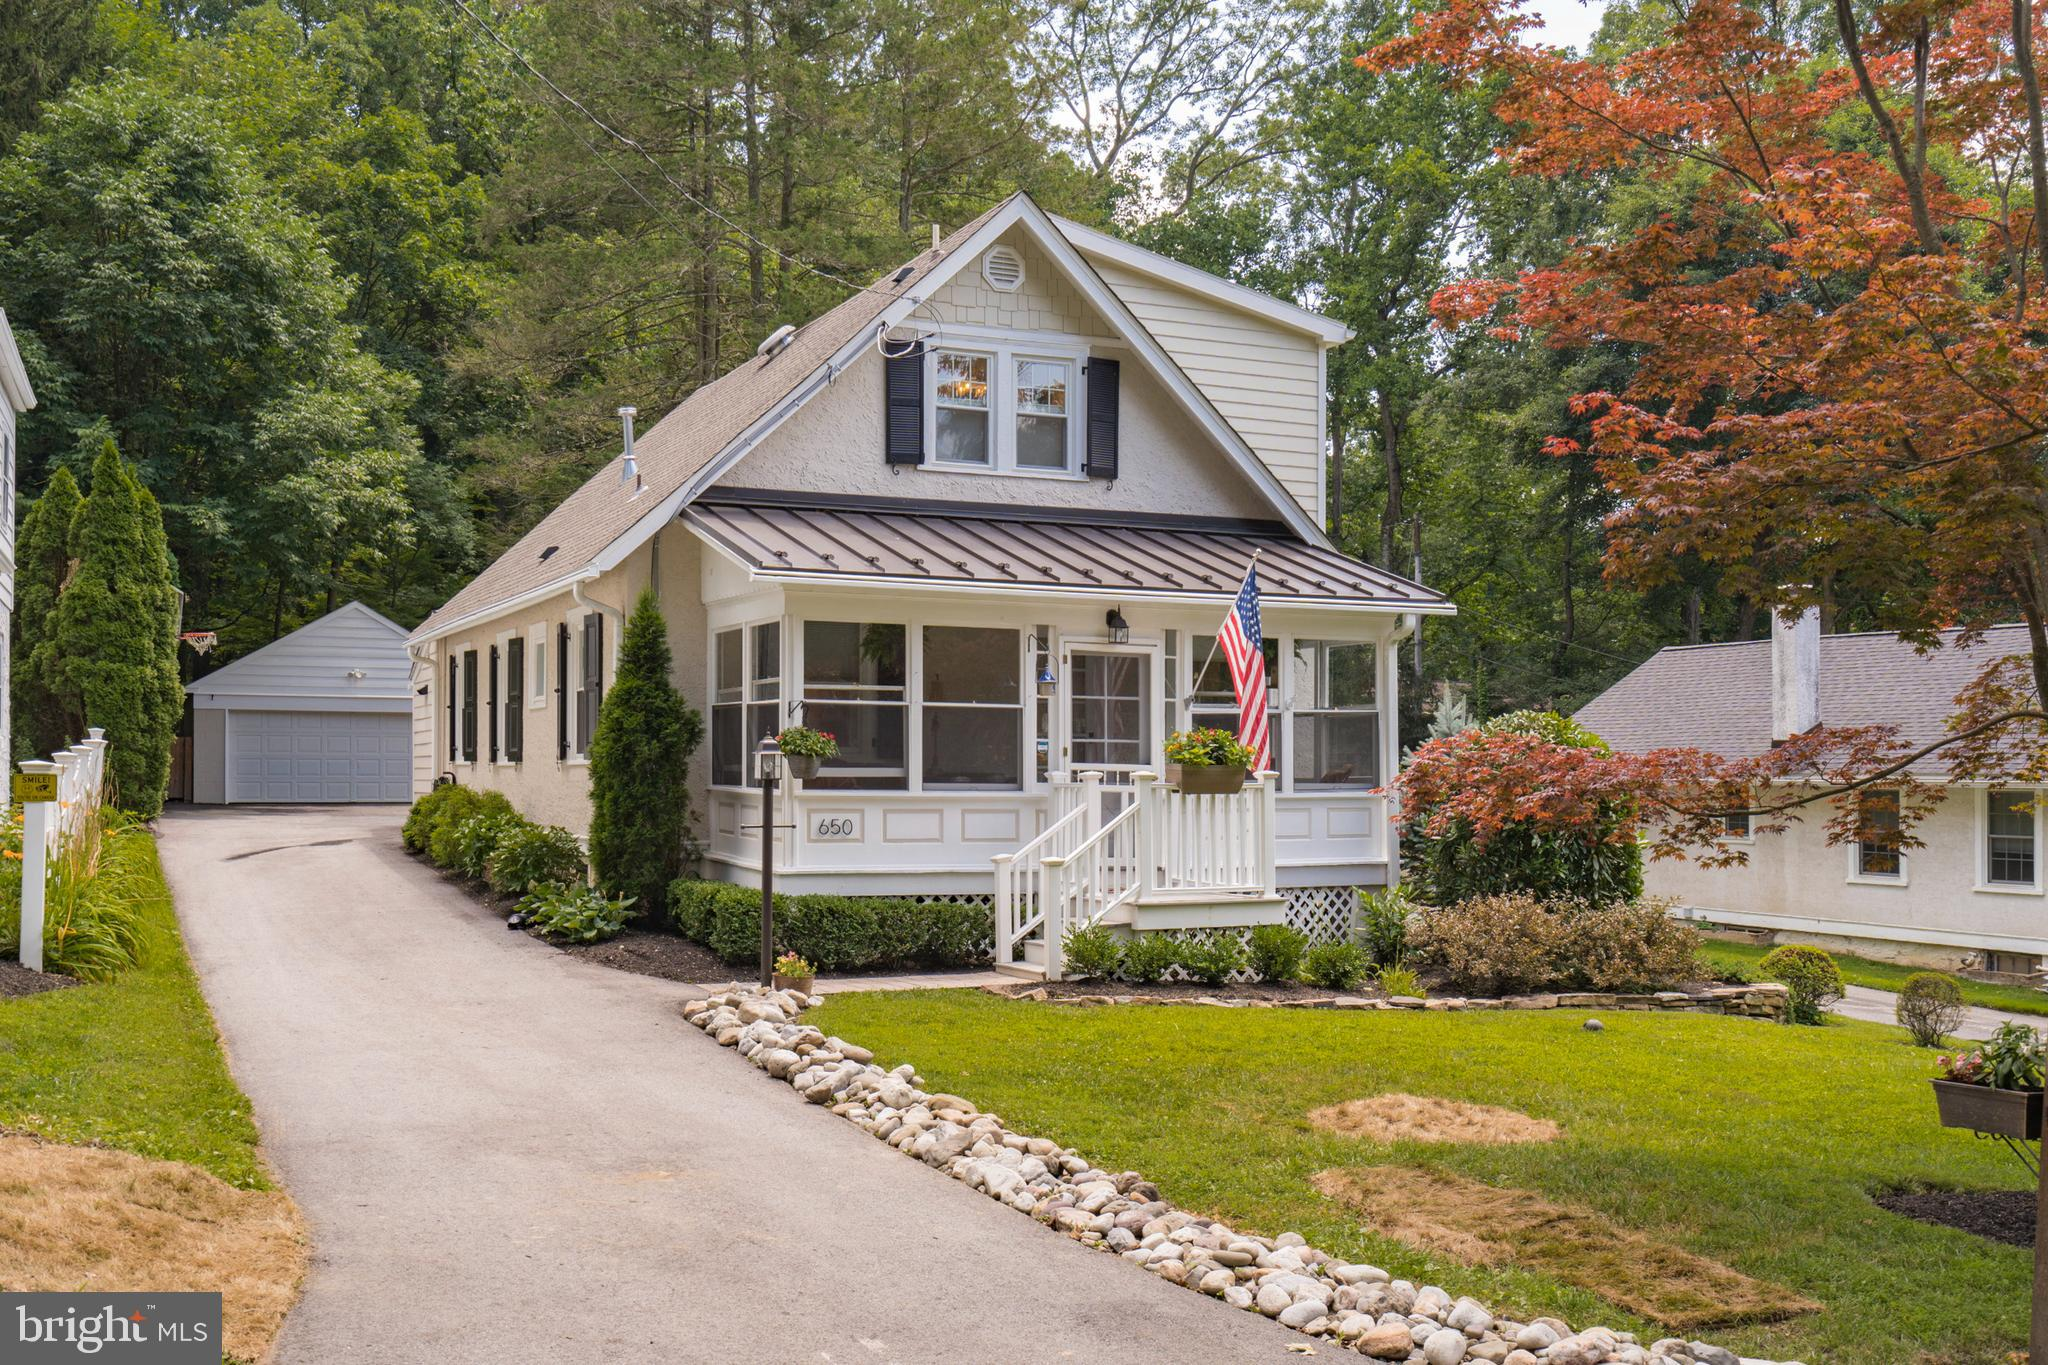 """The highlight of this craftsman style home is the 5 year old, $120K, renovation/addition to the second floor, master bedroom, 35' x 17' including a 12 x 12' custom Closet by Design closet worth over $10K.  Master bath with heated marble floors  extends the full width of the house complete with a water closet, large 4 x 7 shower stall, all custom solid wood cabinetry with marble countertops, marble floor, and full marble shower complete with two showerheads.  All plumbing fixtures, including sinks, $10K , were purchased at Ferguson and come with a lifetime warranty. A brand new HVAC system was installed in this area as well on its own thermostat.  All of the old cast-iron plumbing was removed and replaced during this renovation. Updated Kitchen with solid hardwood cabinetry and full wood boxes.  Heated floors. Granite countertops with large breakfast bar, large pantry cabinet, and coat closet. Two year old dishwasher. Kitchen and Dining room with custom woodwork including beadboard and period correct 1 1/2"""" maple top rail.  The open floor plan with custom mill work living room/dining room combo is 35 foot long complete with custom radiator covers, Roman shades and window treatments. Pretty front porch with full windows and screens to relax in the morning or in the evening.  Deck to the porch is made with maintenance-free Trex and vinyl rails. Two bedrooms on main floor, one currently being used as a home office. The first floor full bathroom has all marble shower, floor, countertops, and Wainscoting. All custom moldings and custom solid wood cabinetry.  The shower is complete with custom shower doors, barrel ceiling and a window. Step down to your basement retreat complete with large, full egress windows and a Bilco door and 4 massive double closets.  Family room, bedroom, and bathroom including a shower stall doubles as the laundry room. A separate storage furnace area is also on this level with Bilco doors leading to the outside.  Basement renovation included water"""